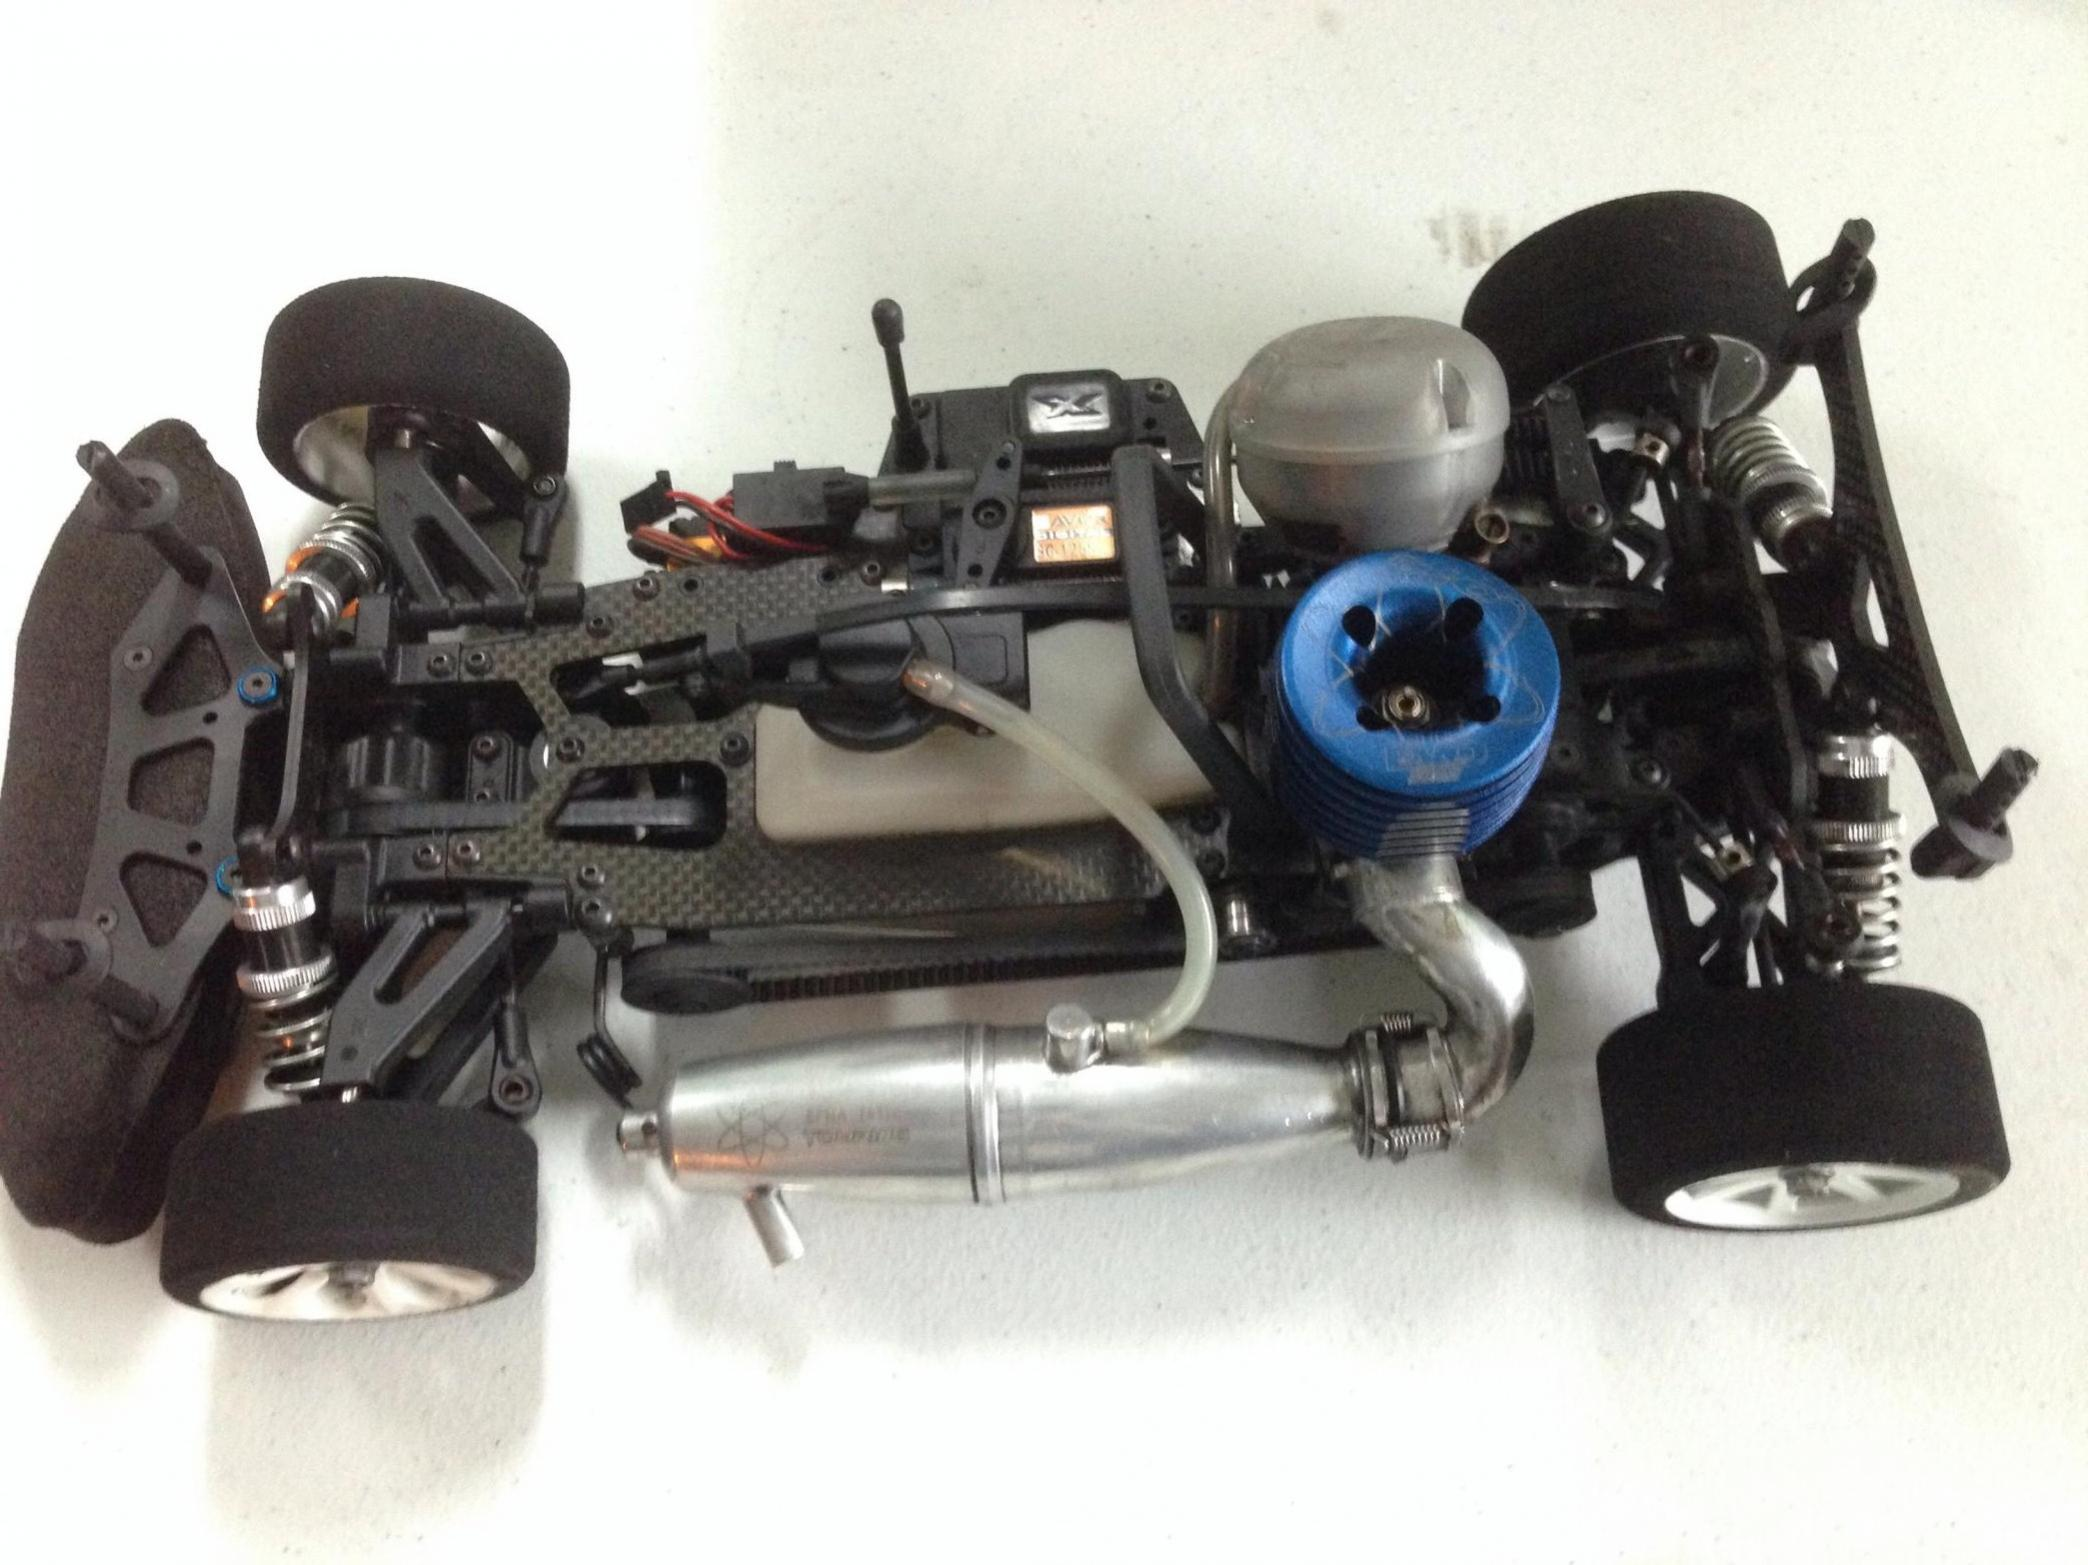 XRAY Nt1 2011 for sale - R/C Tech Forums